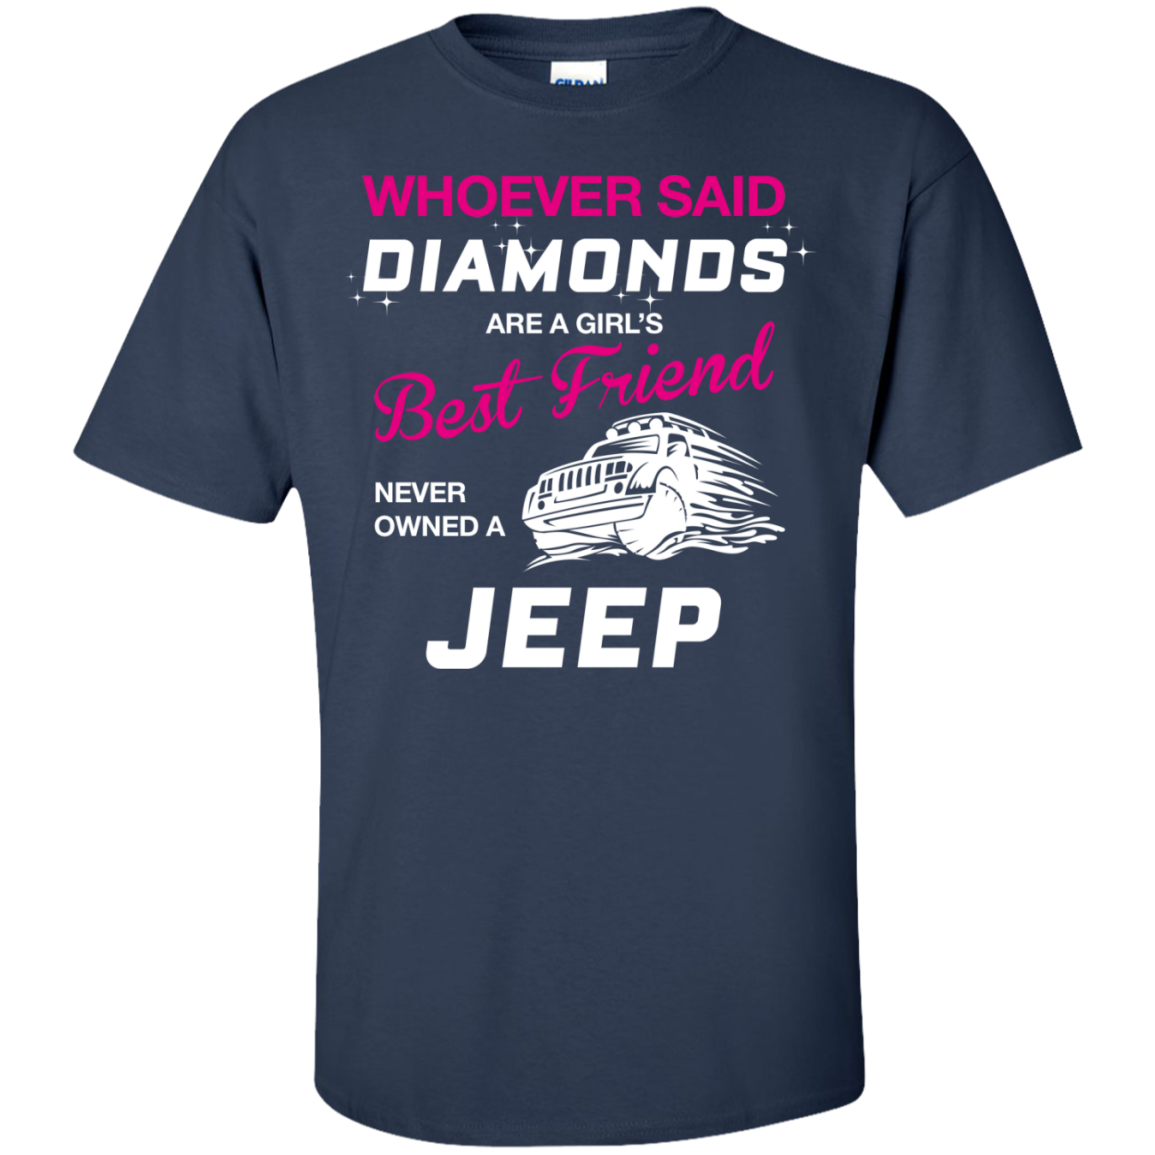 Whoever said DIAMONDS are a girl's Best Friend never owned a JEEP - TheSunCat.com - 2